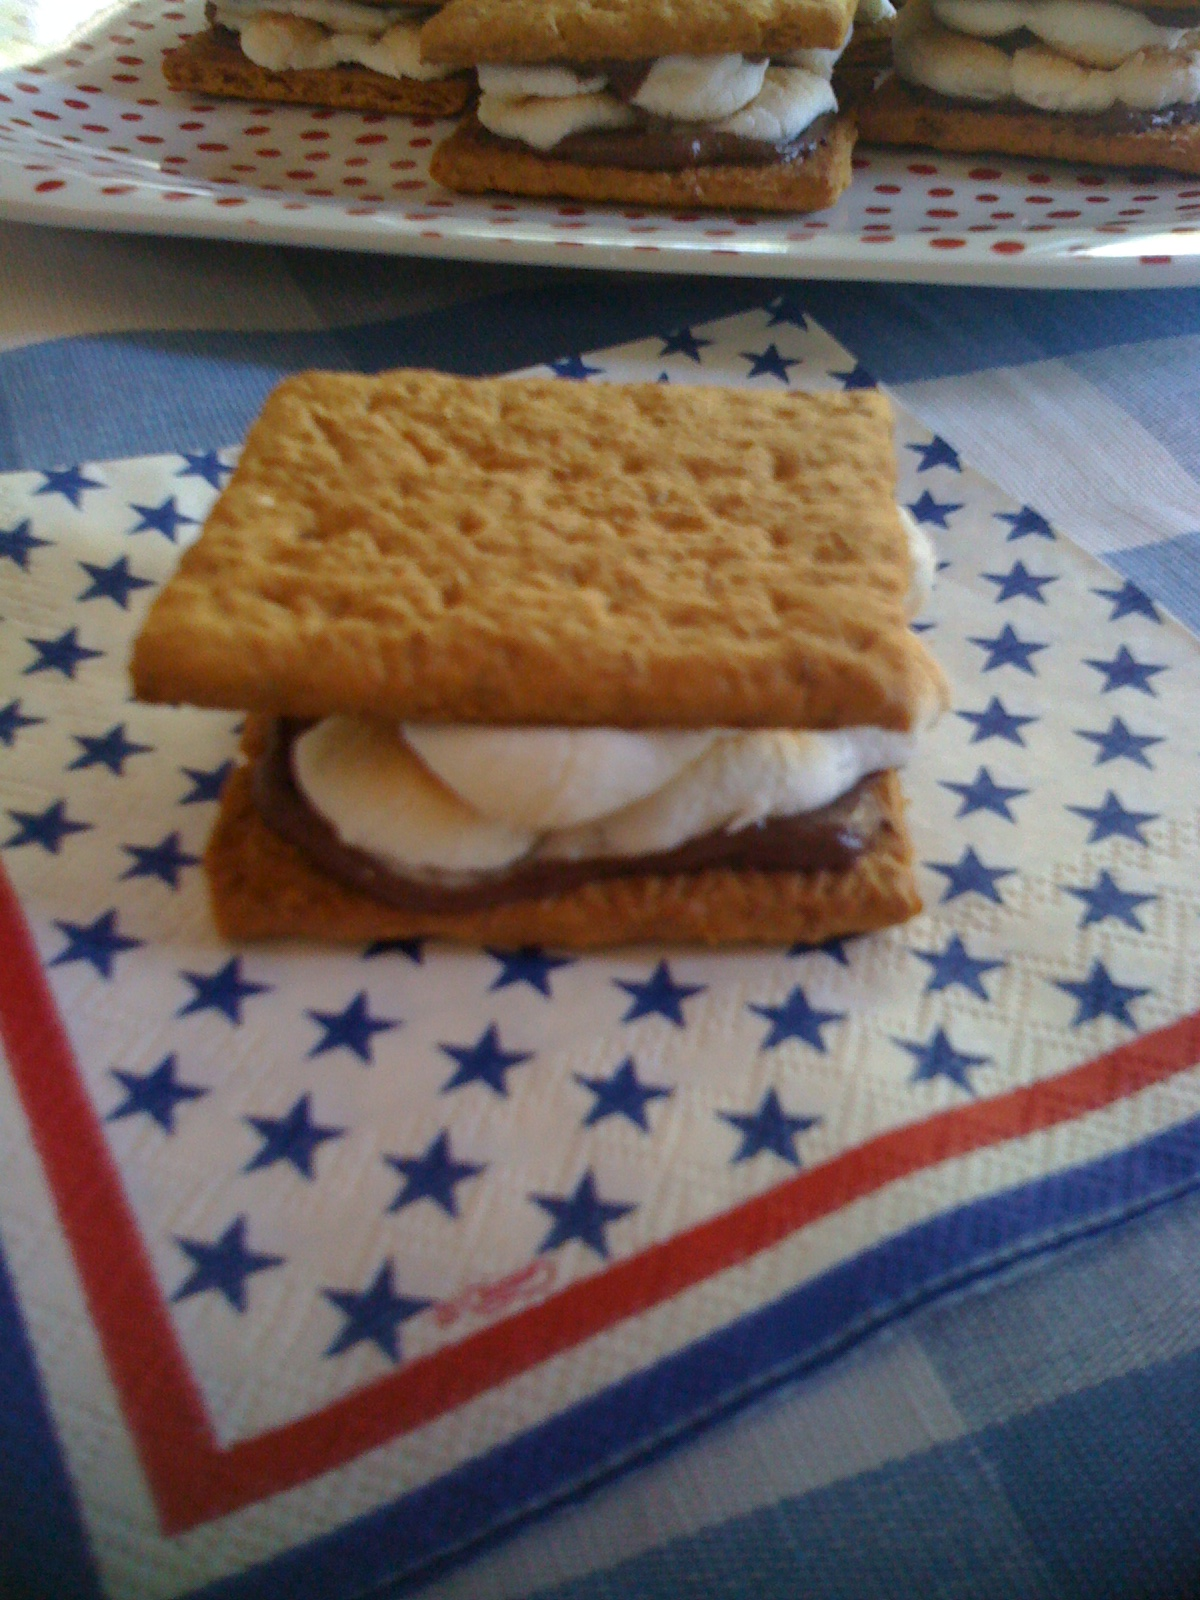 how to make easy indoor s'mores